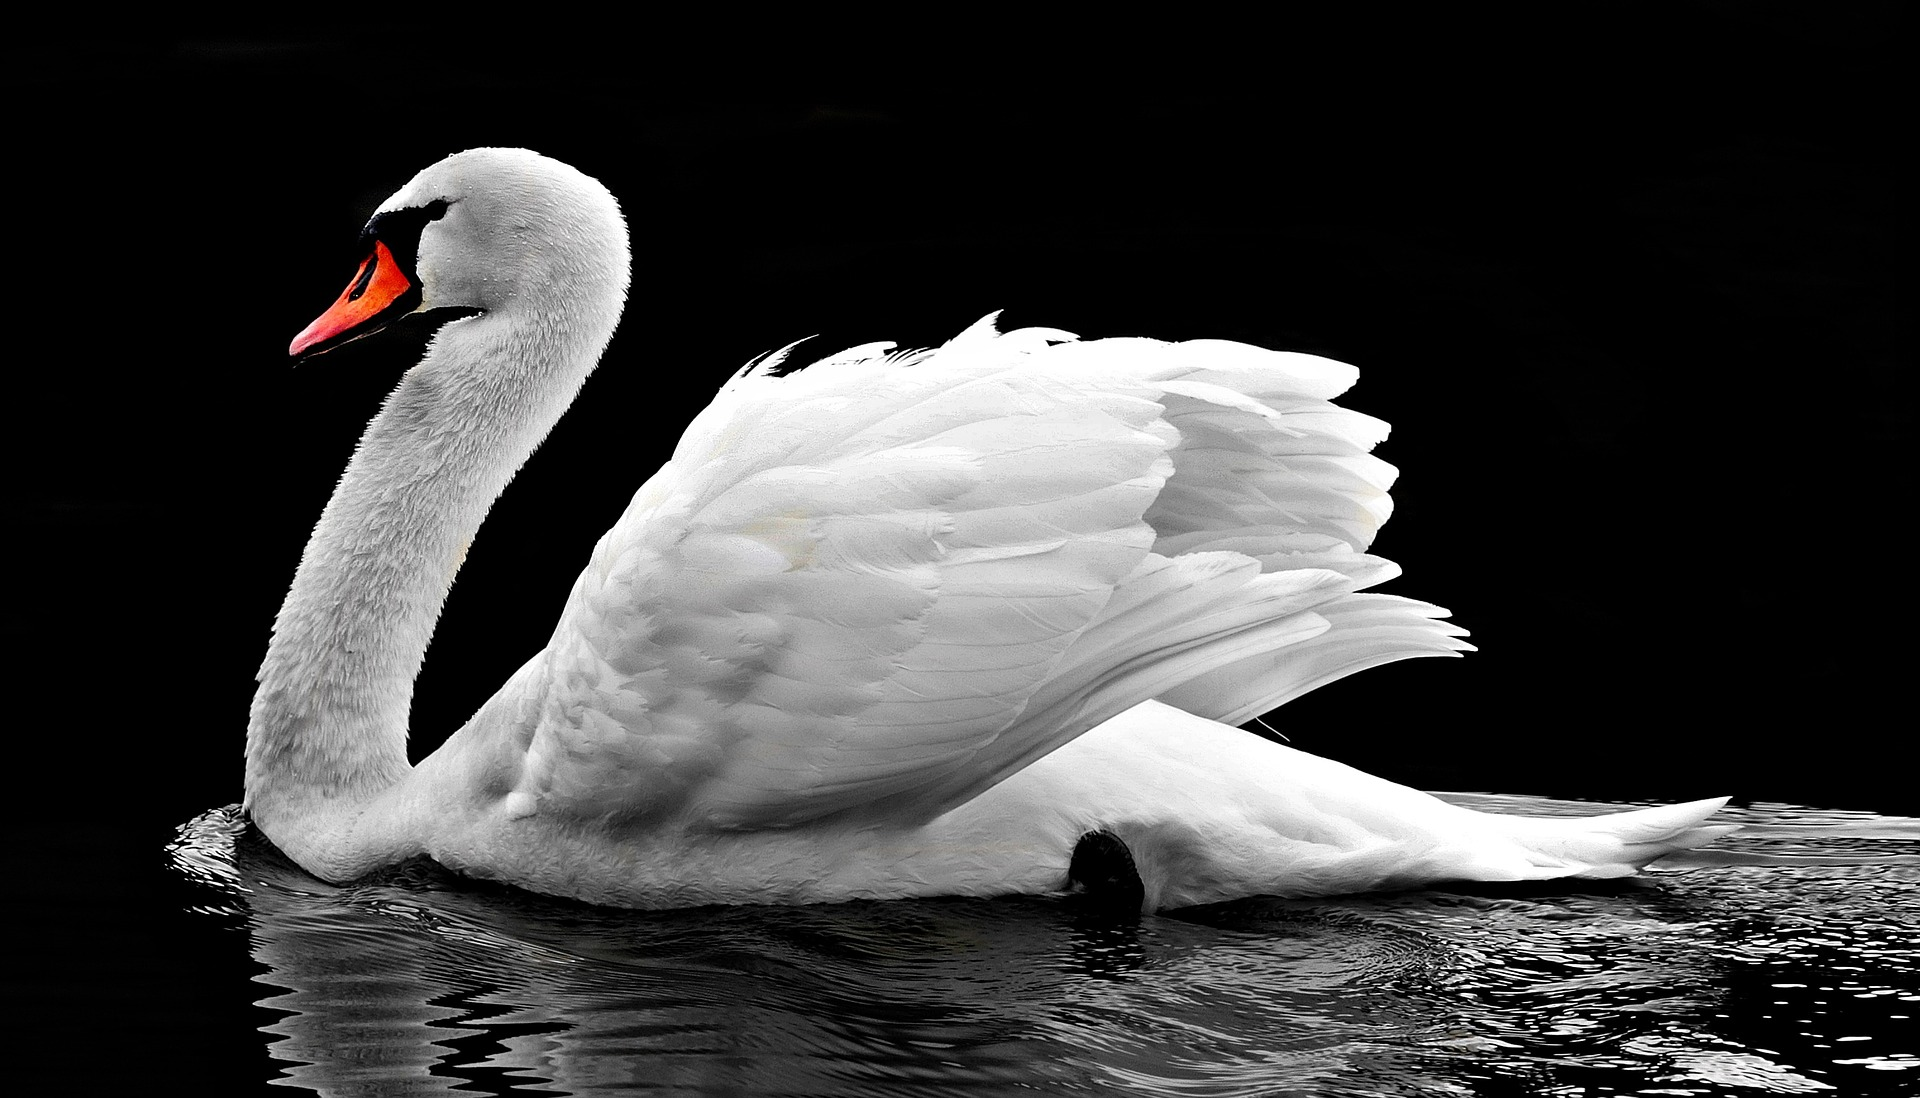 Swans will be fine fed bread if there is no other food available for them, the Queen's swan marker David Barber has said.